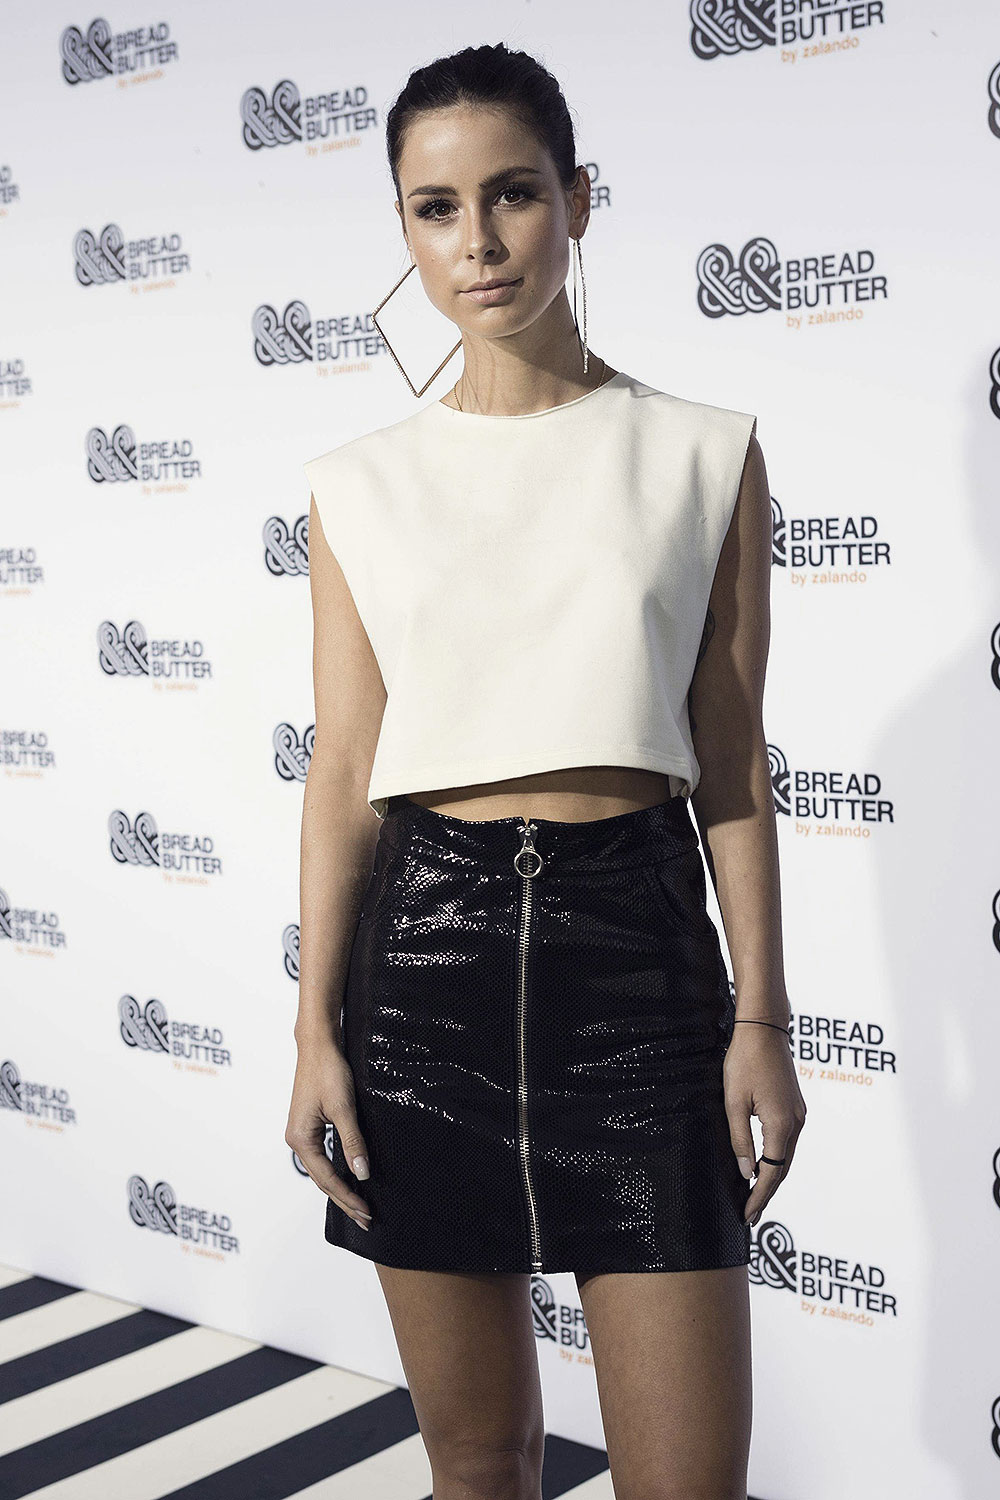 Lena Meyer-Landrut attends Opening Bread & Butter ...